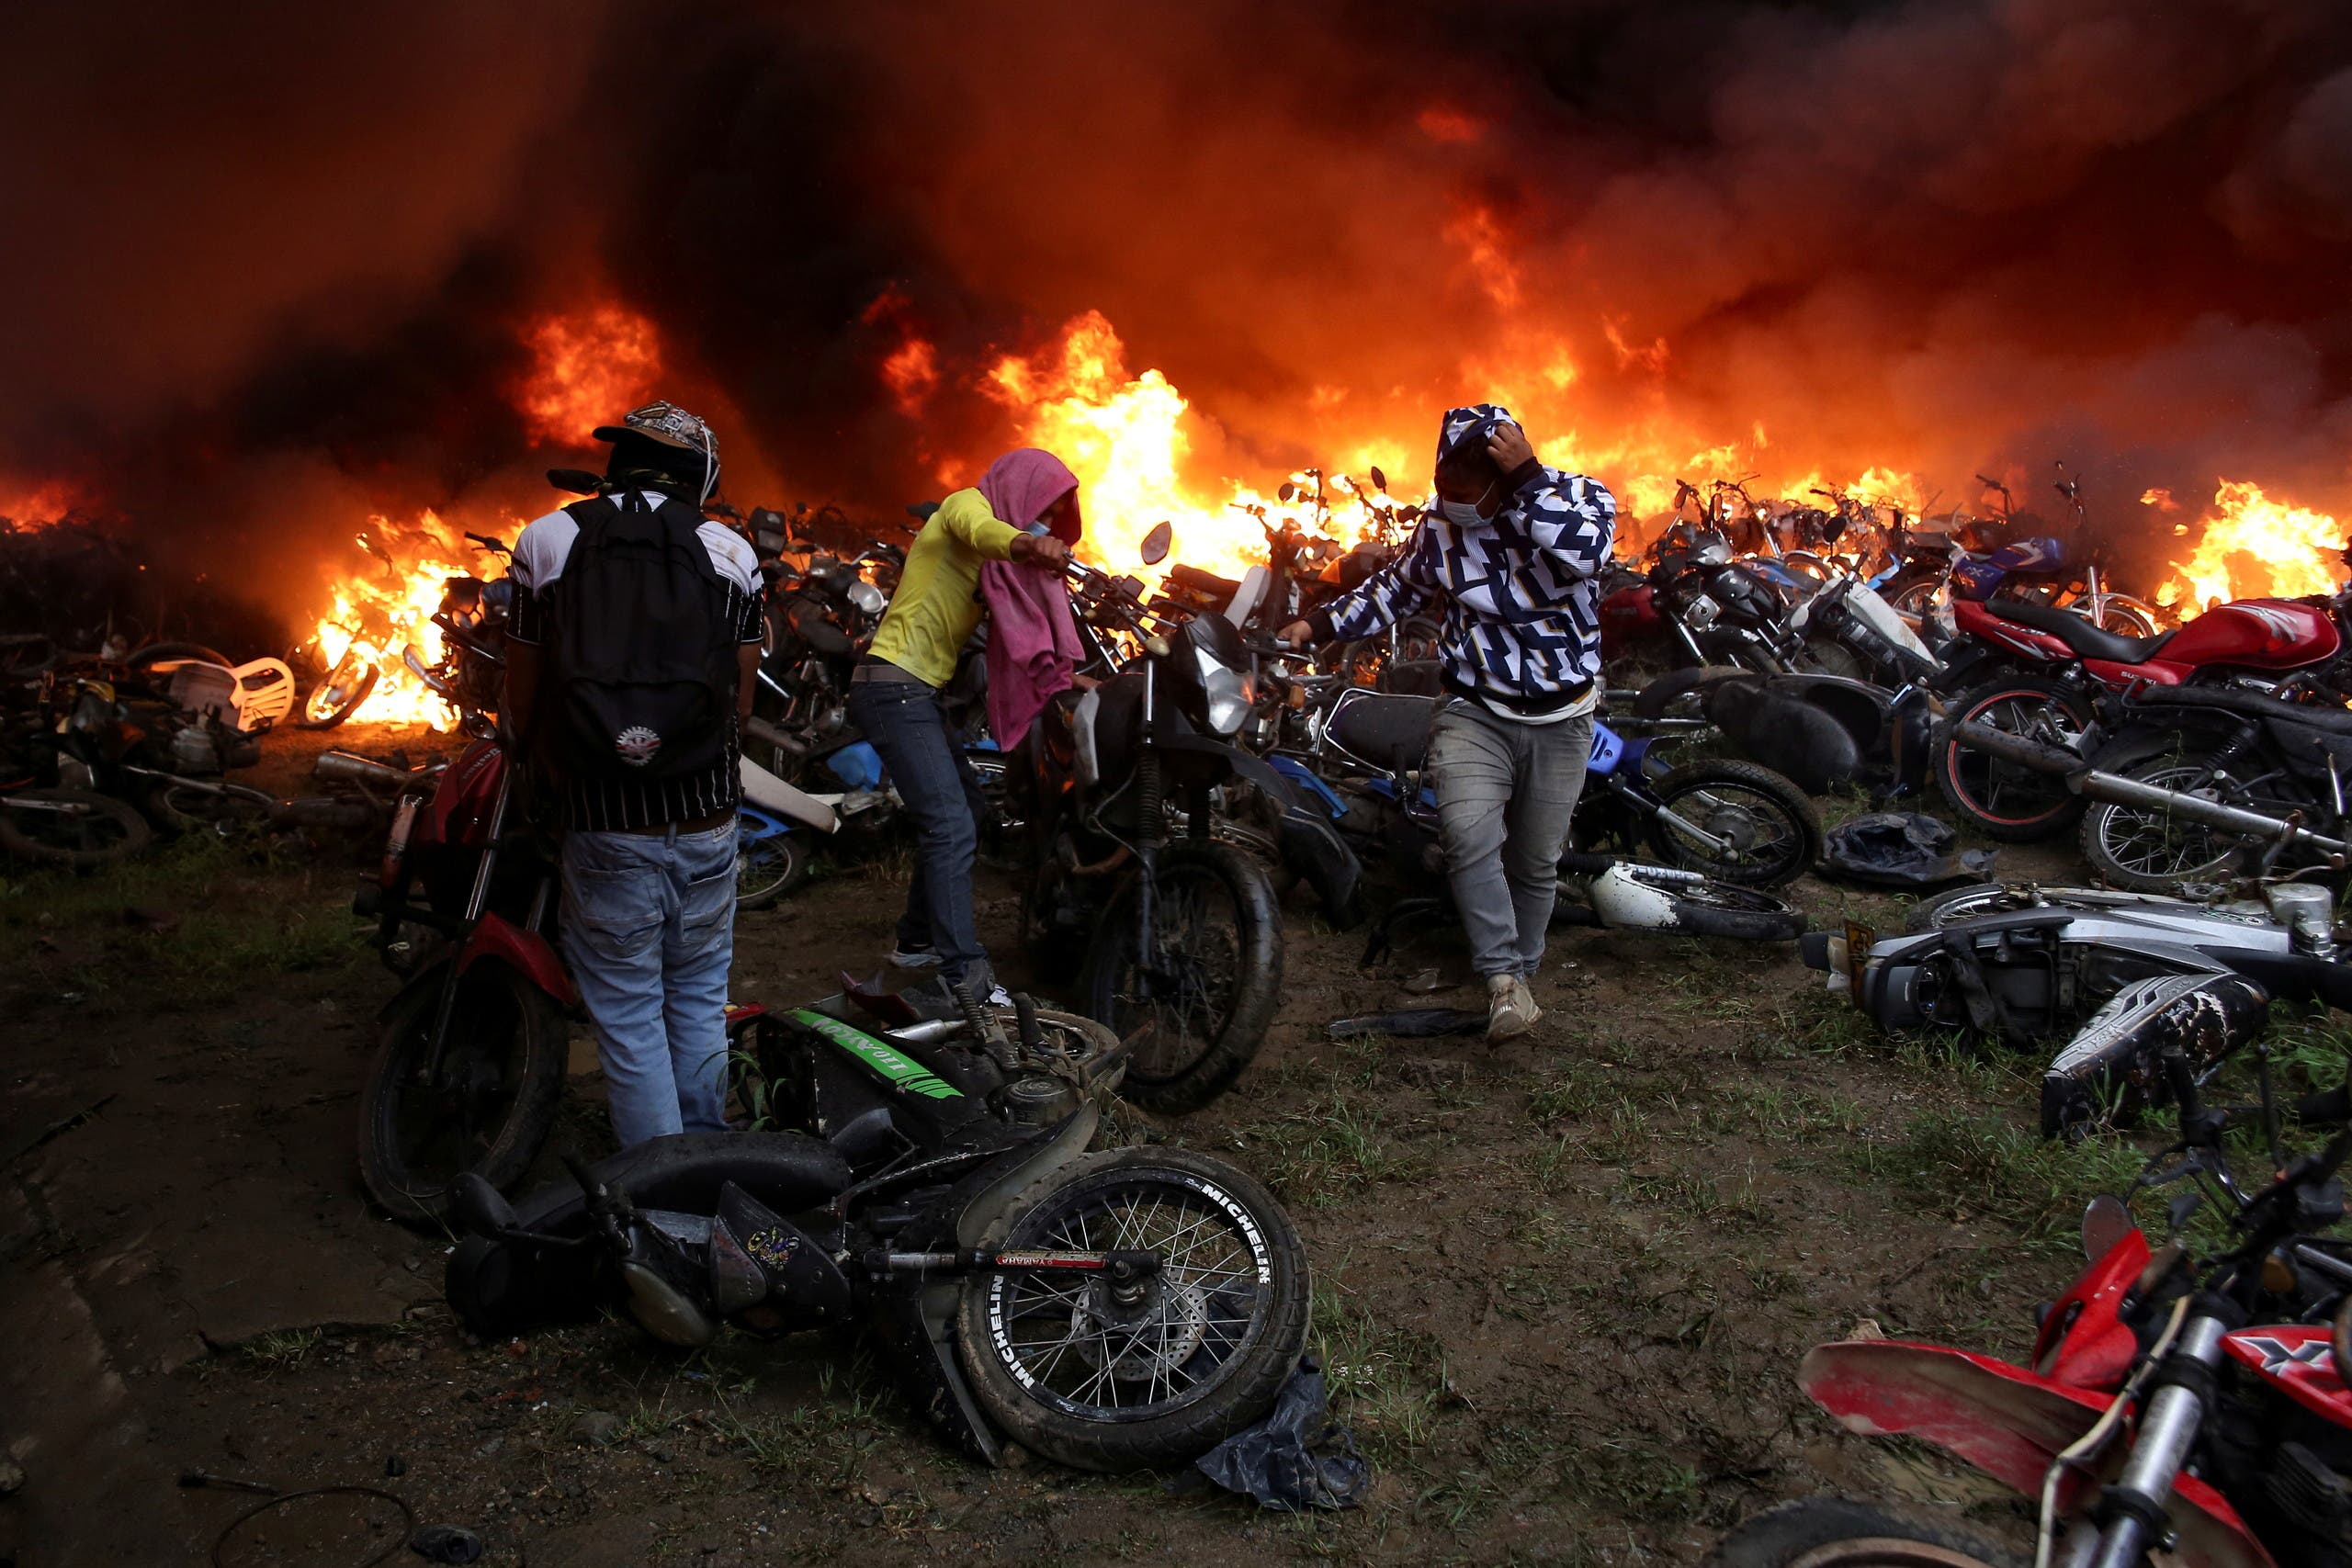 Motorcycles that are are impounded for violating traffic regulations are seen on fire at the municipal yards, in Popayan, Colombia May 28, 2021. (Reuters)